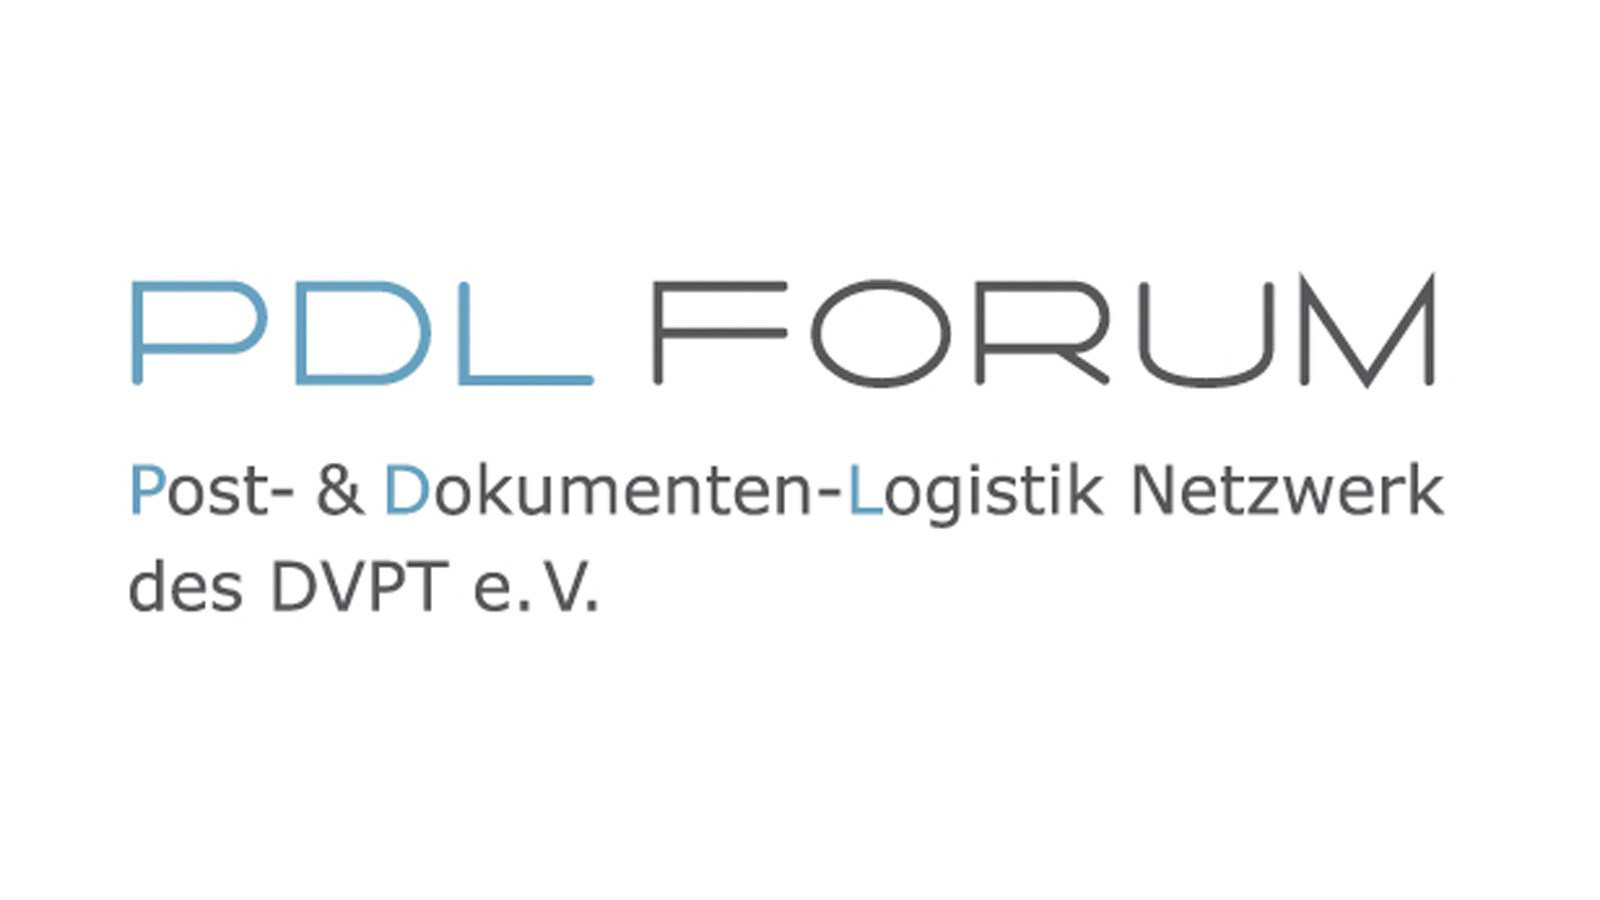 PDL Forum 2018 – Meeting Place for Post Office Managers and Logistics professionals